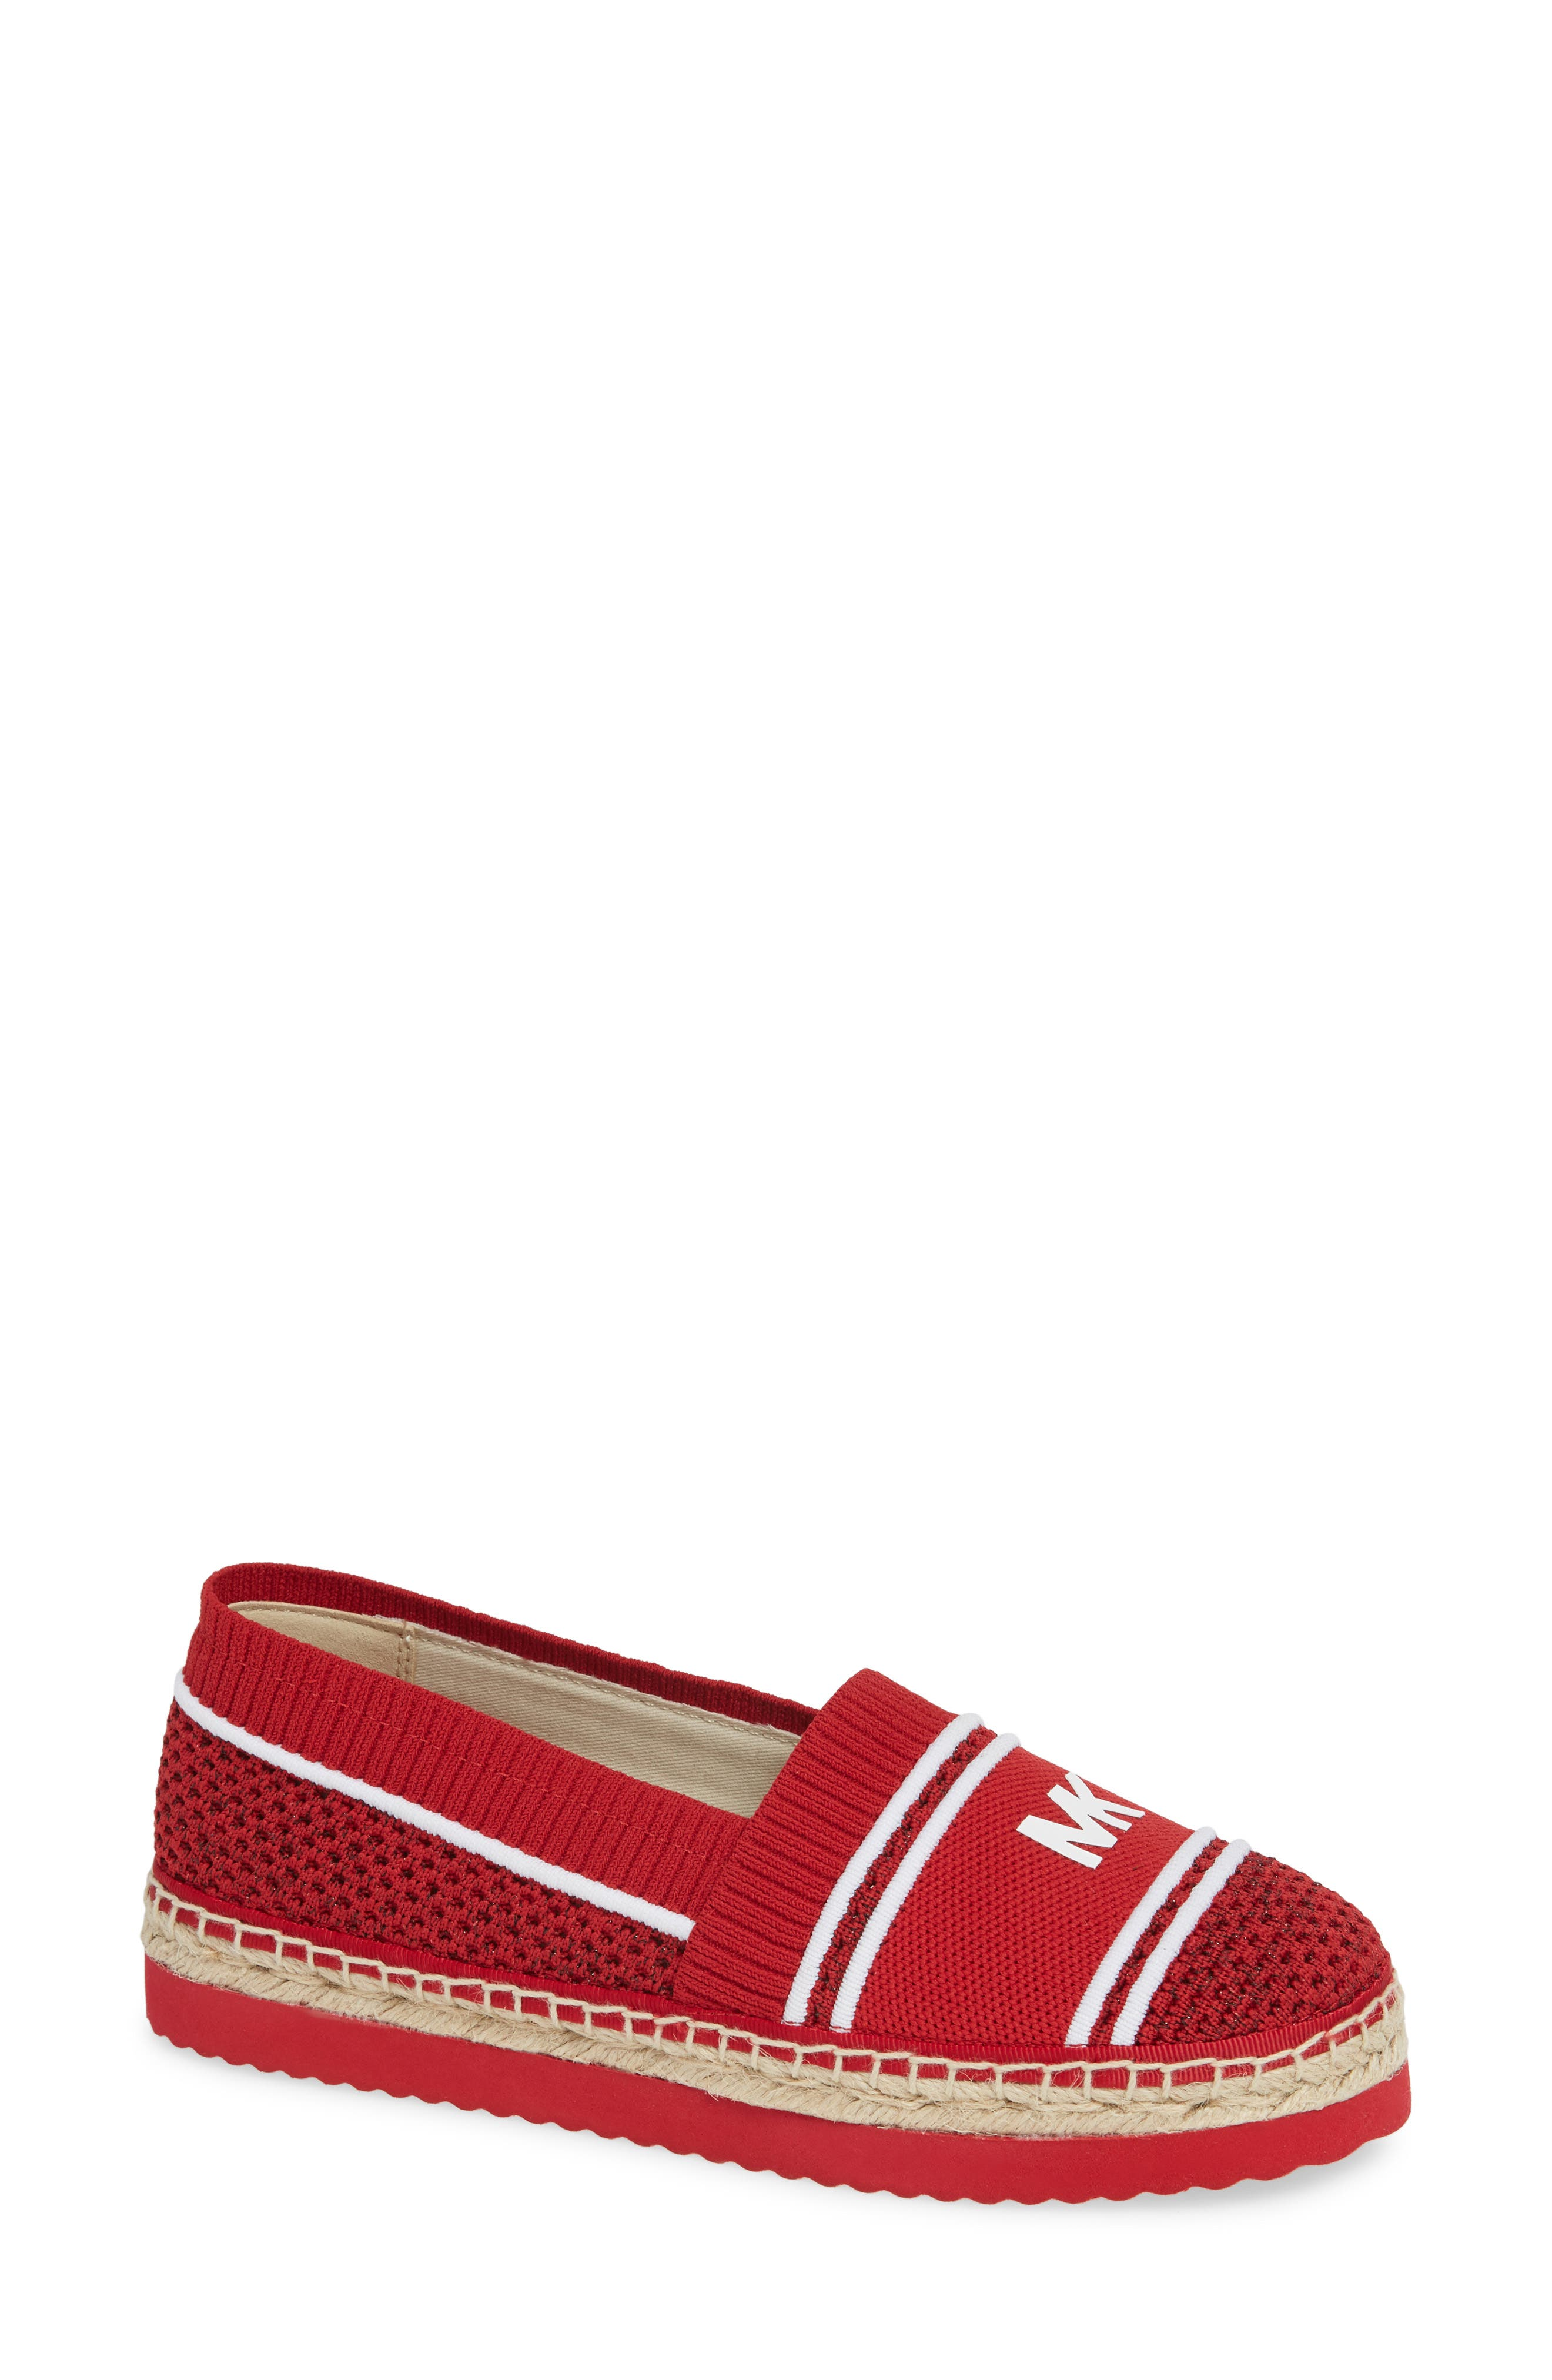 Raya Espadrille in Red Fabric